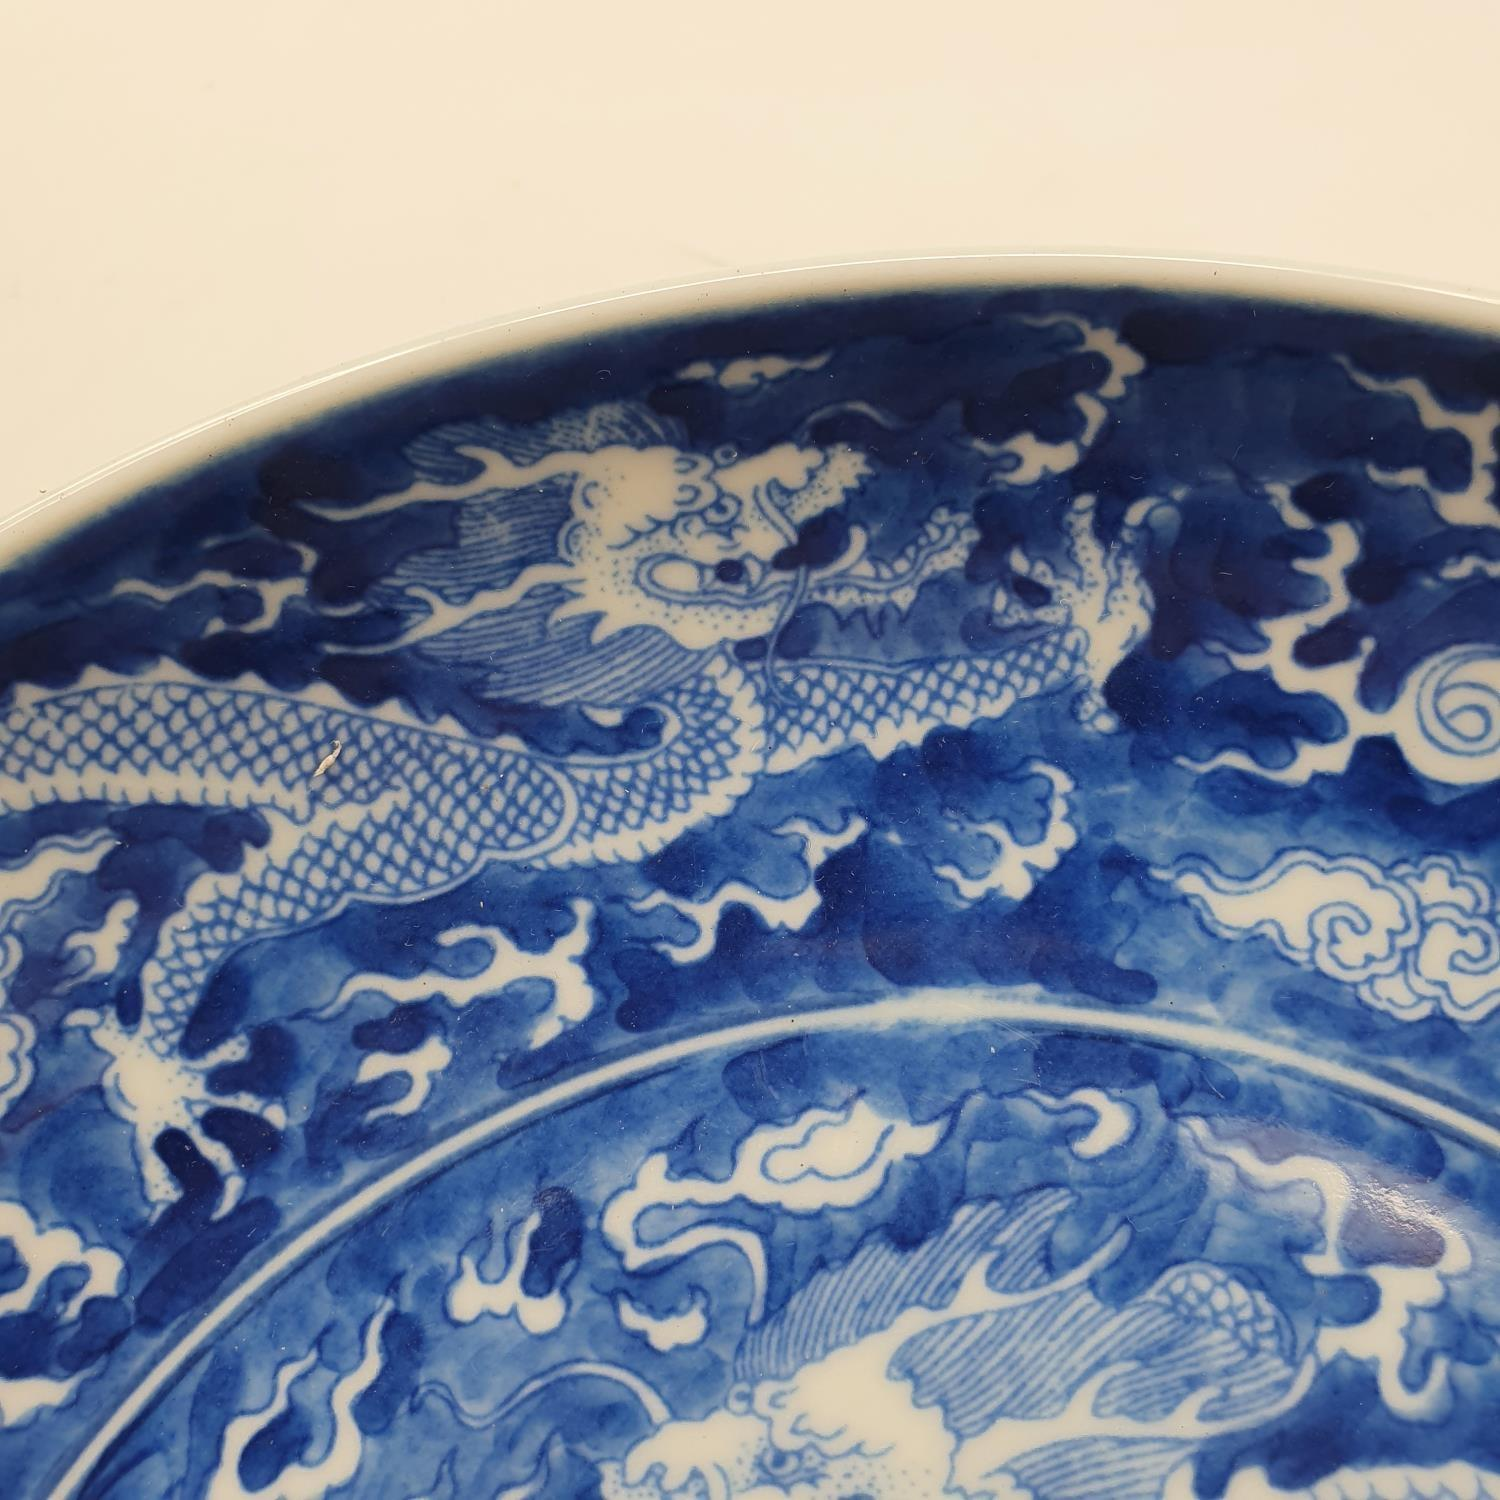 A Chinese blue and white plate, decorated with dragon chasing a flaming pearl, 25 cm diameter - Image 6 of 6